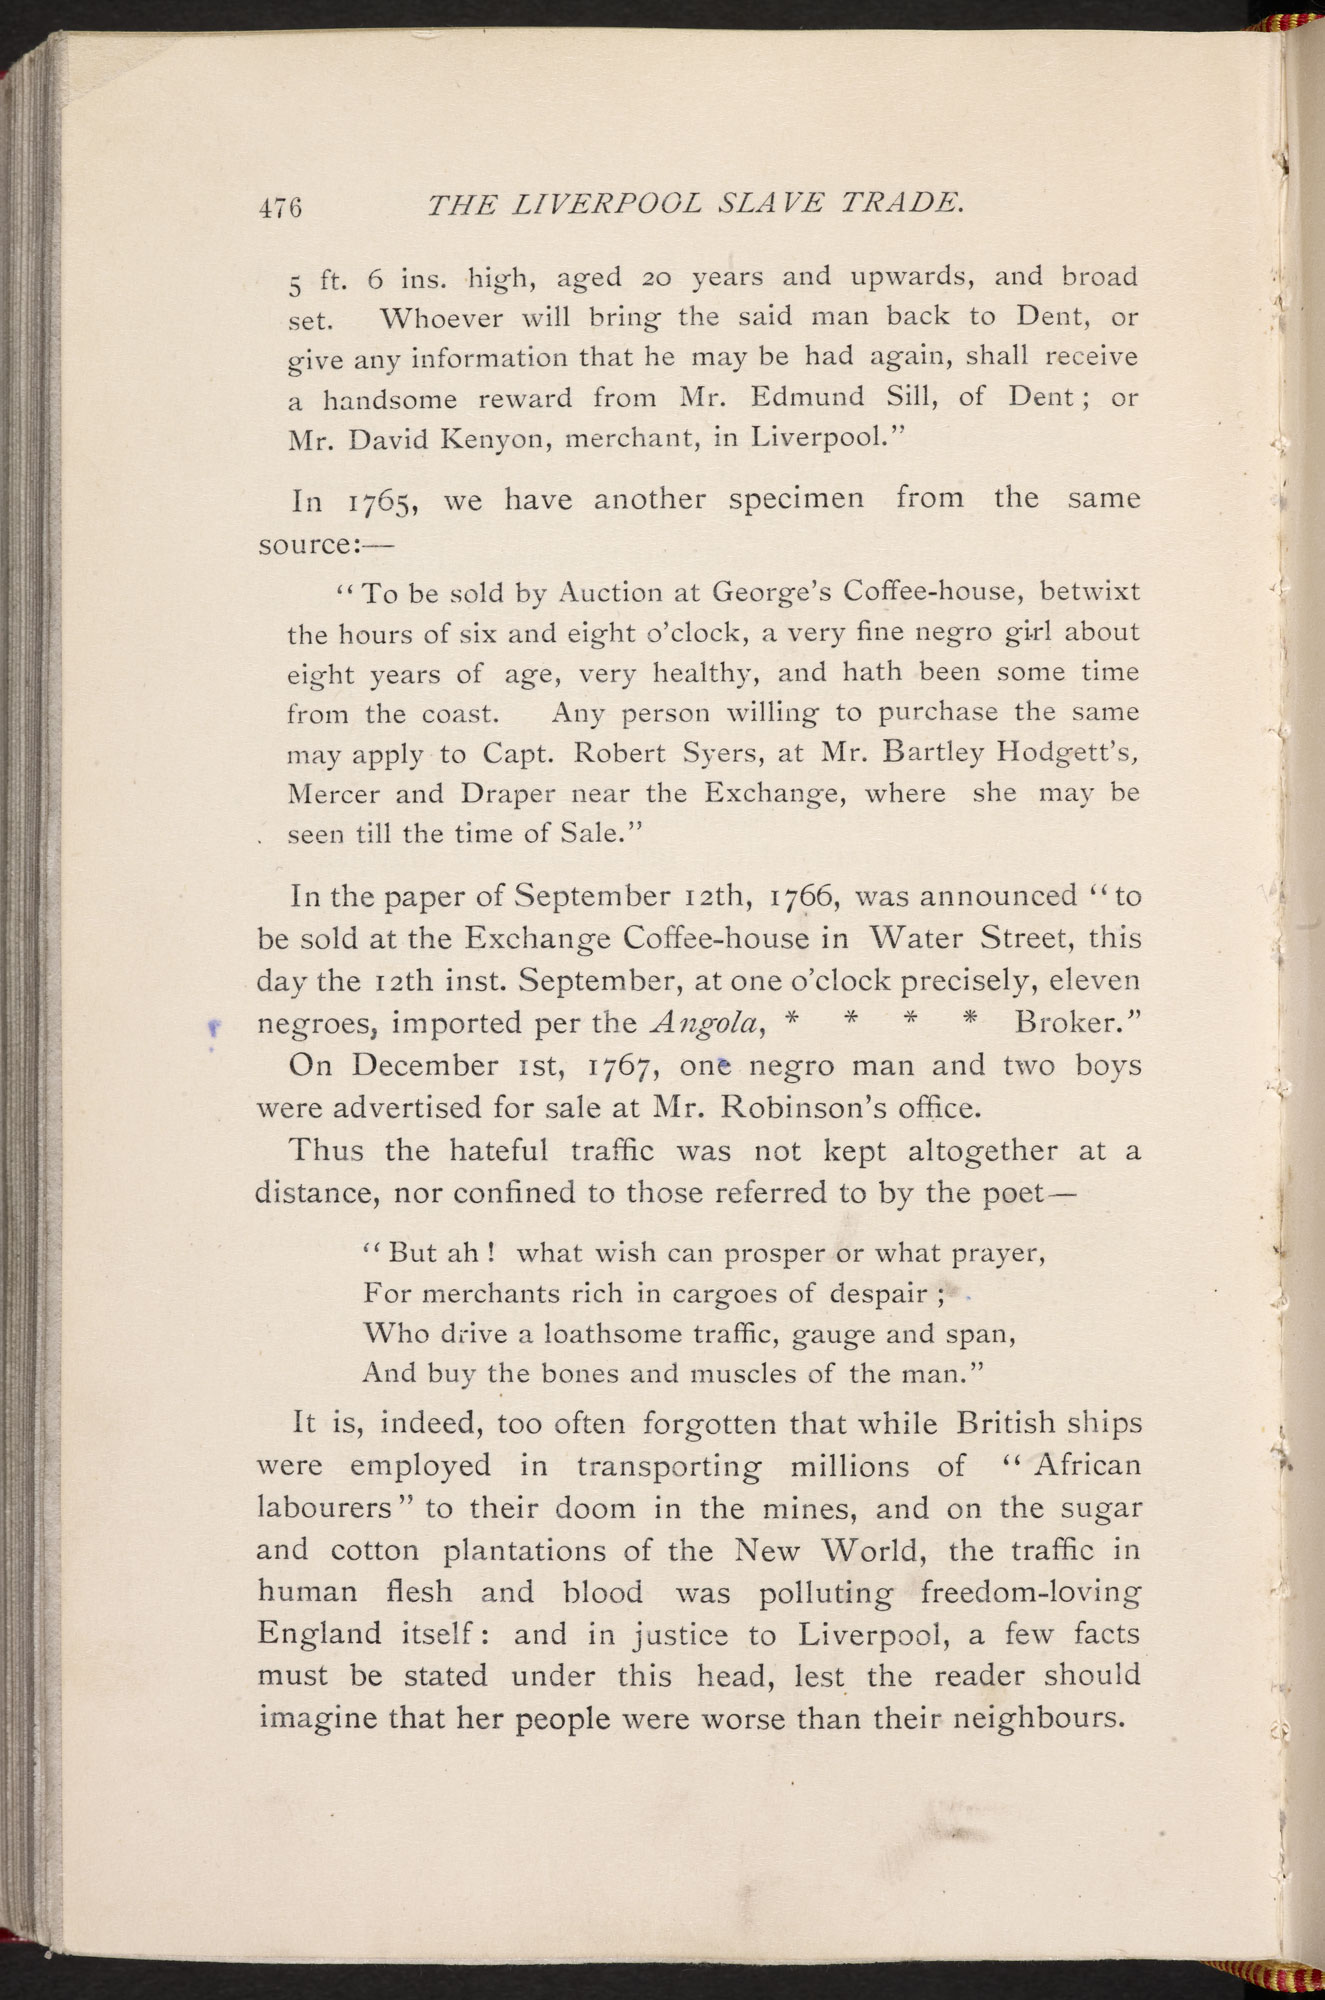 Retrospective account of the Liverpool slave trade [page: 476]